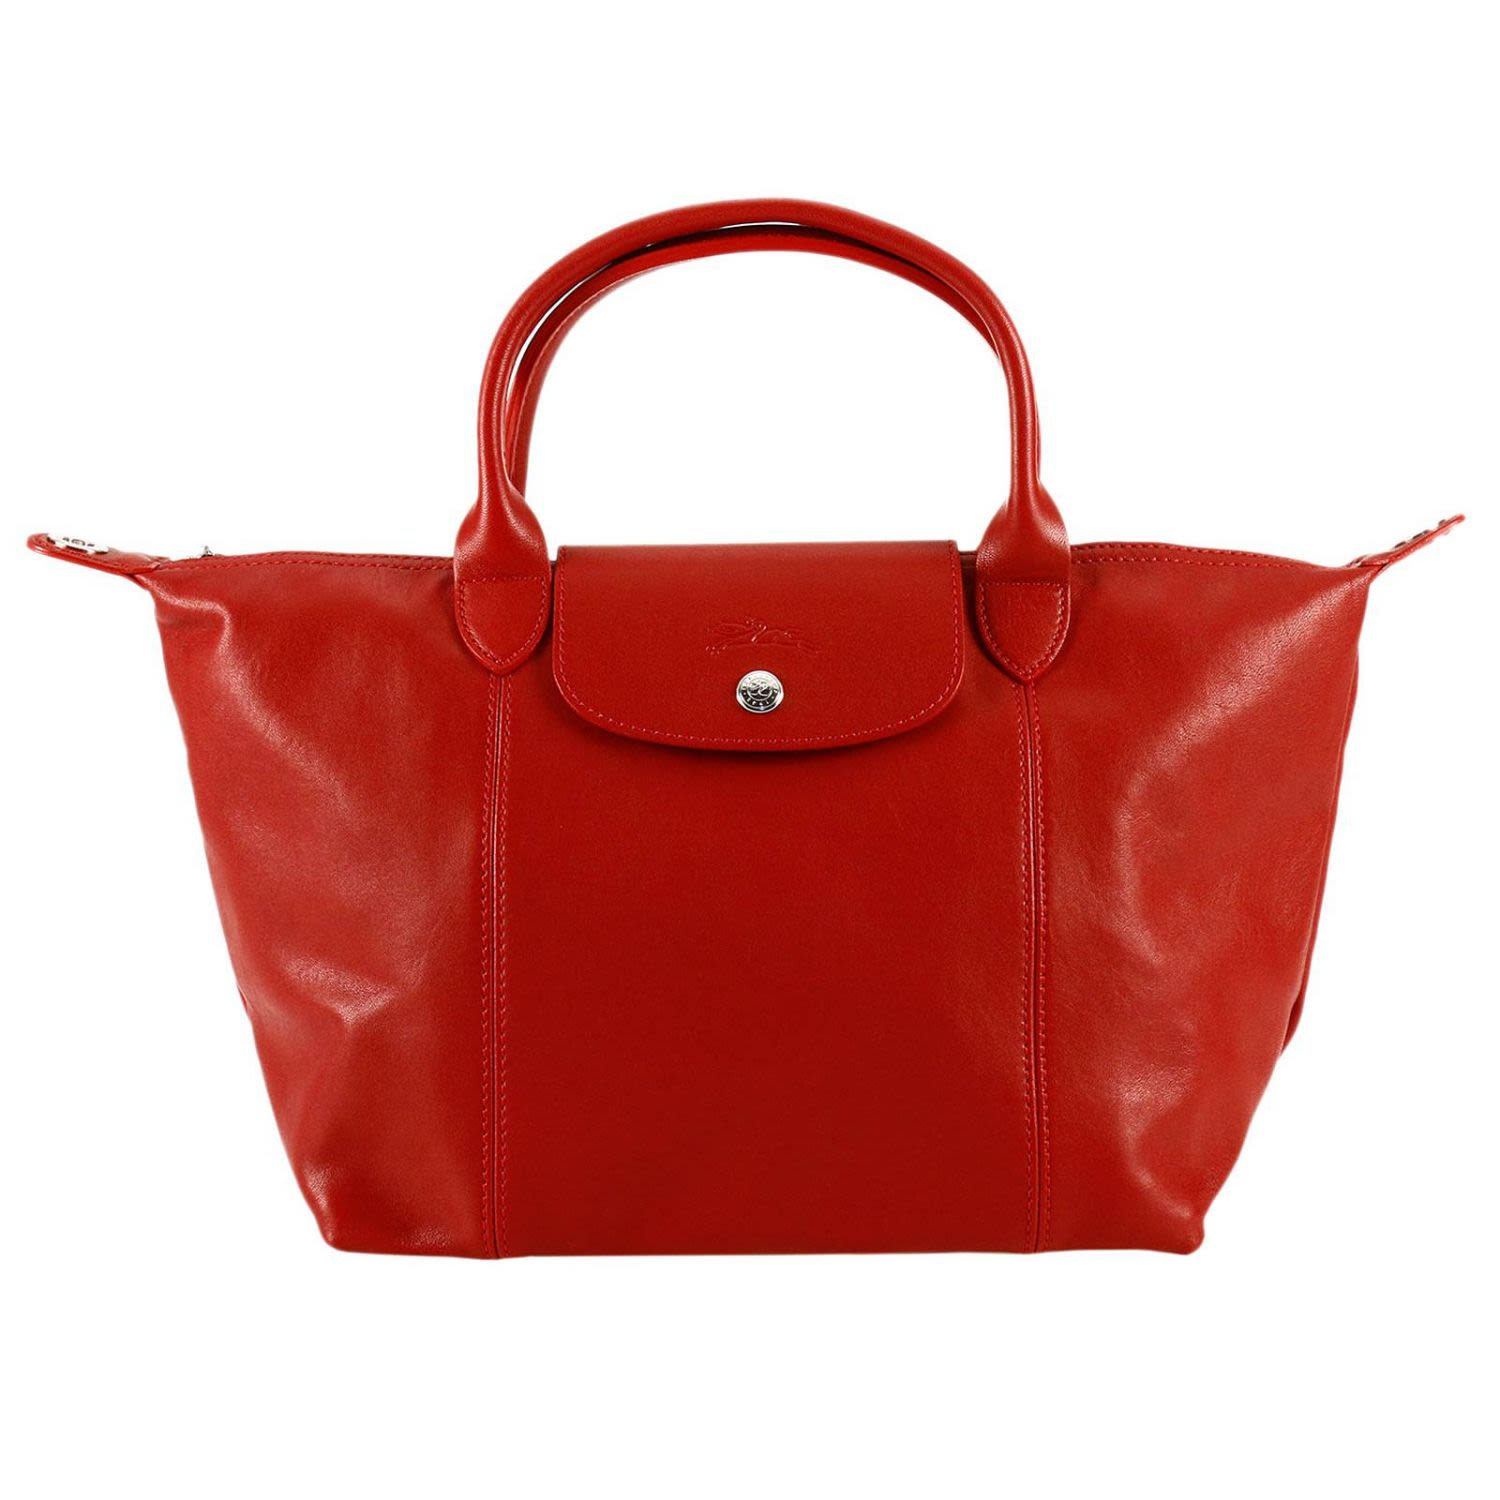 Handbag Shoulder Bag Women Longchamp